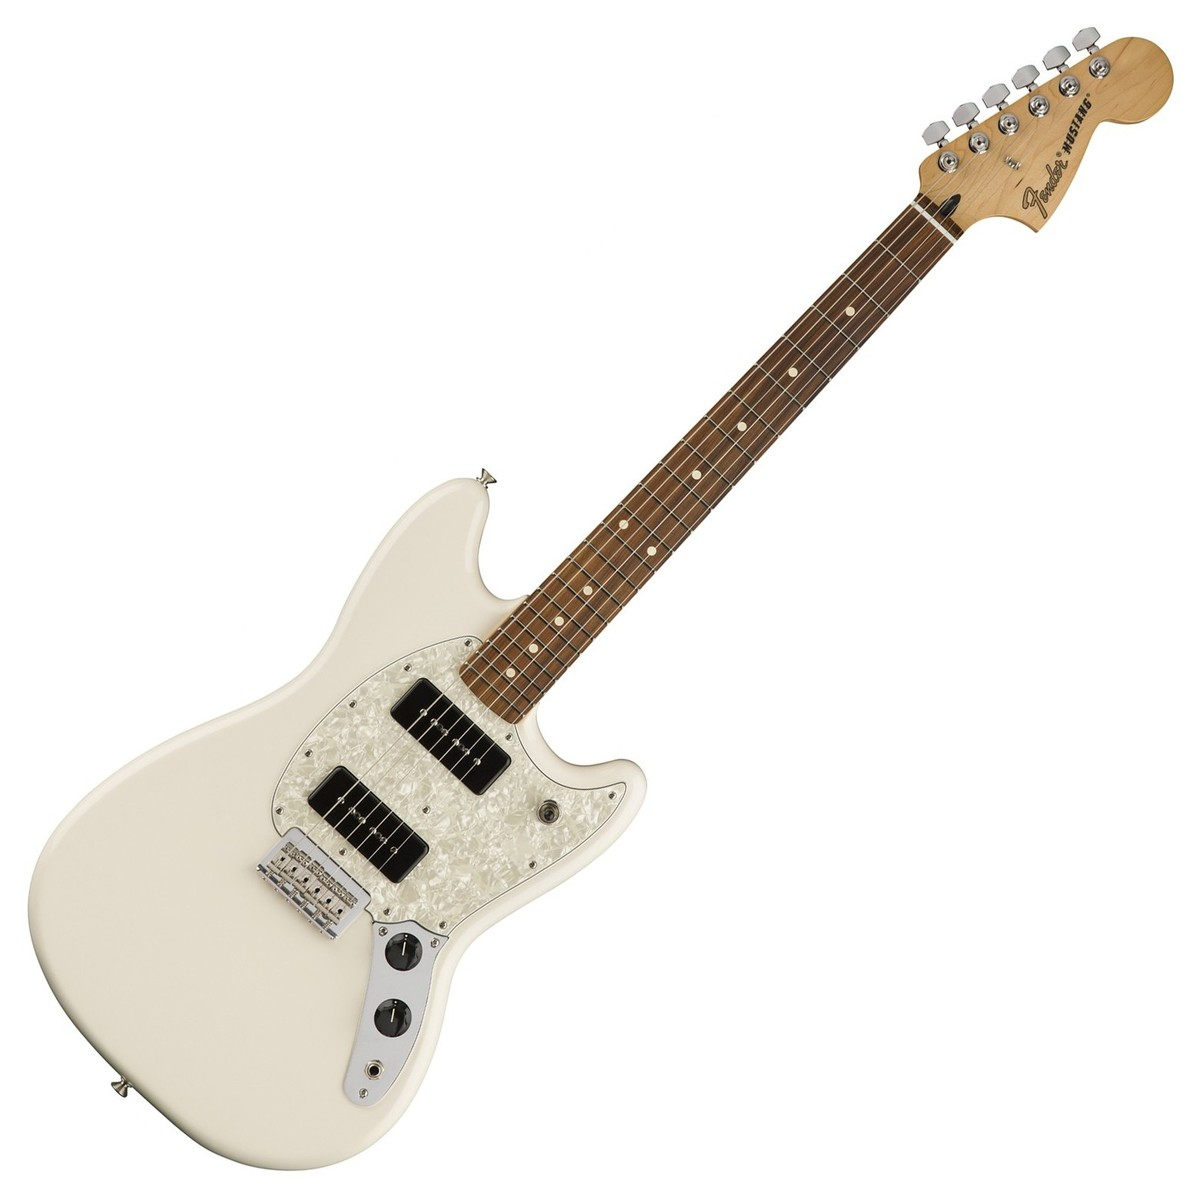 fender mustang 90 electric guitar pau ferro olympic white b stock at gear4music. Black Bedroom Furniture Sets. Home Design Ideas